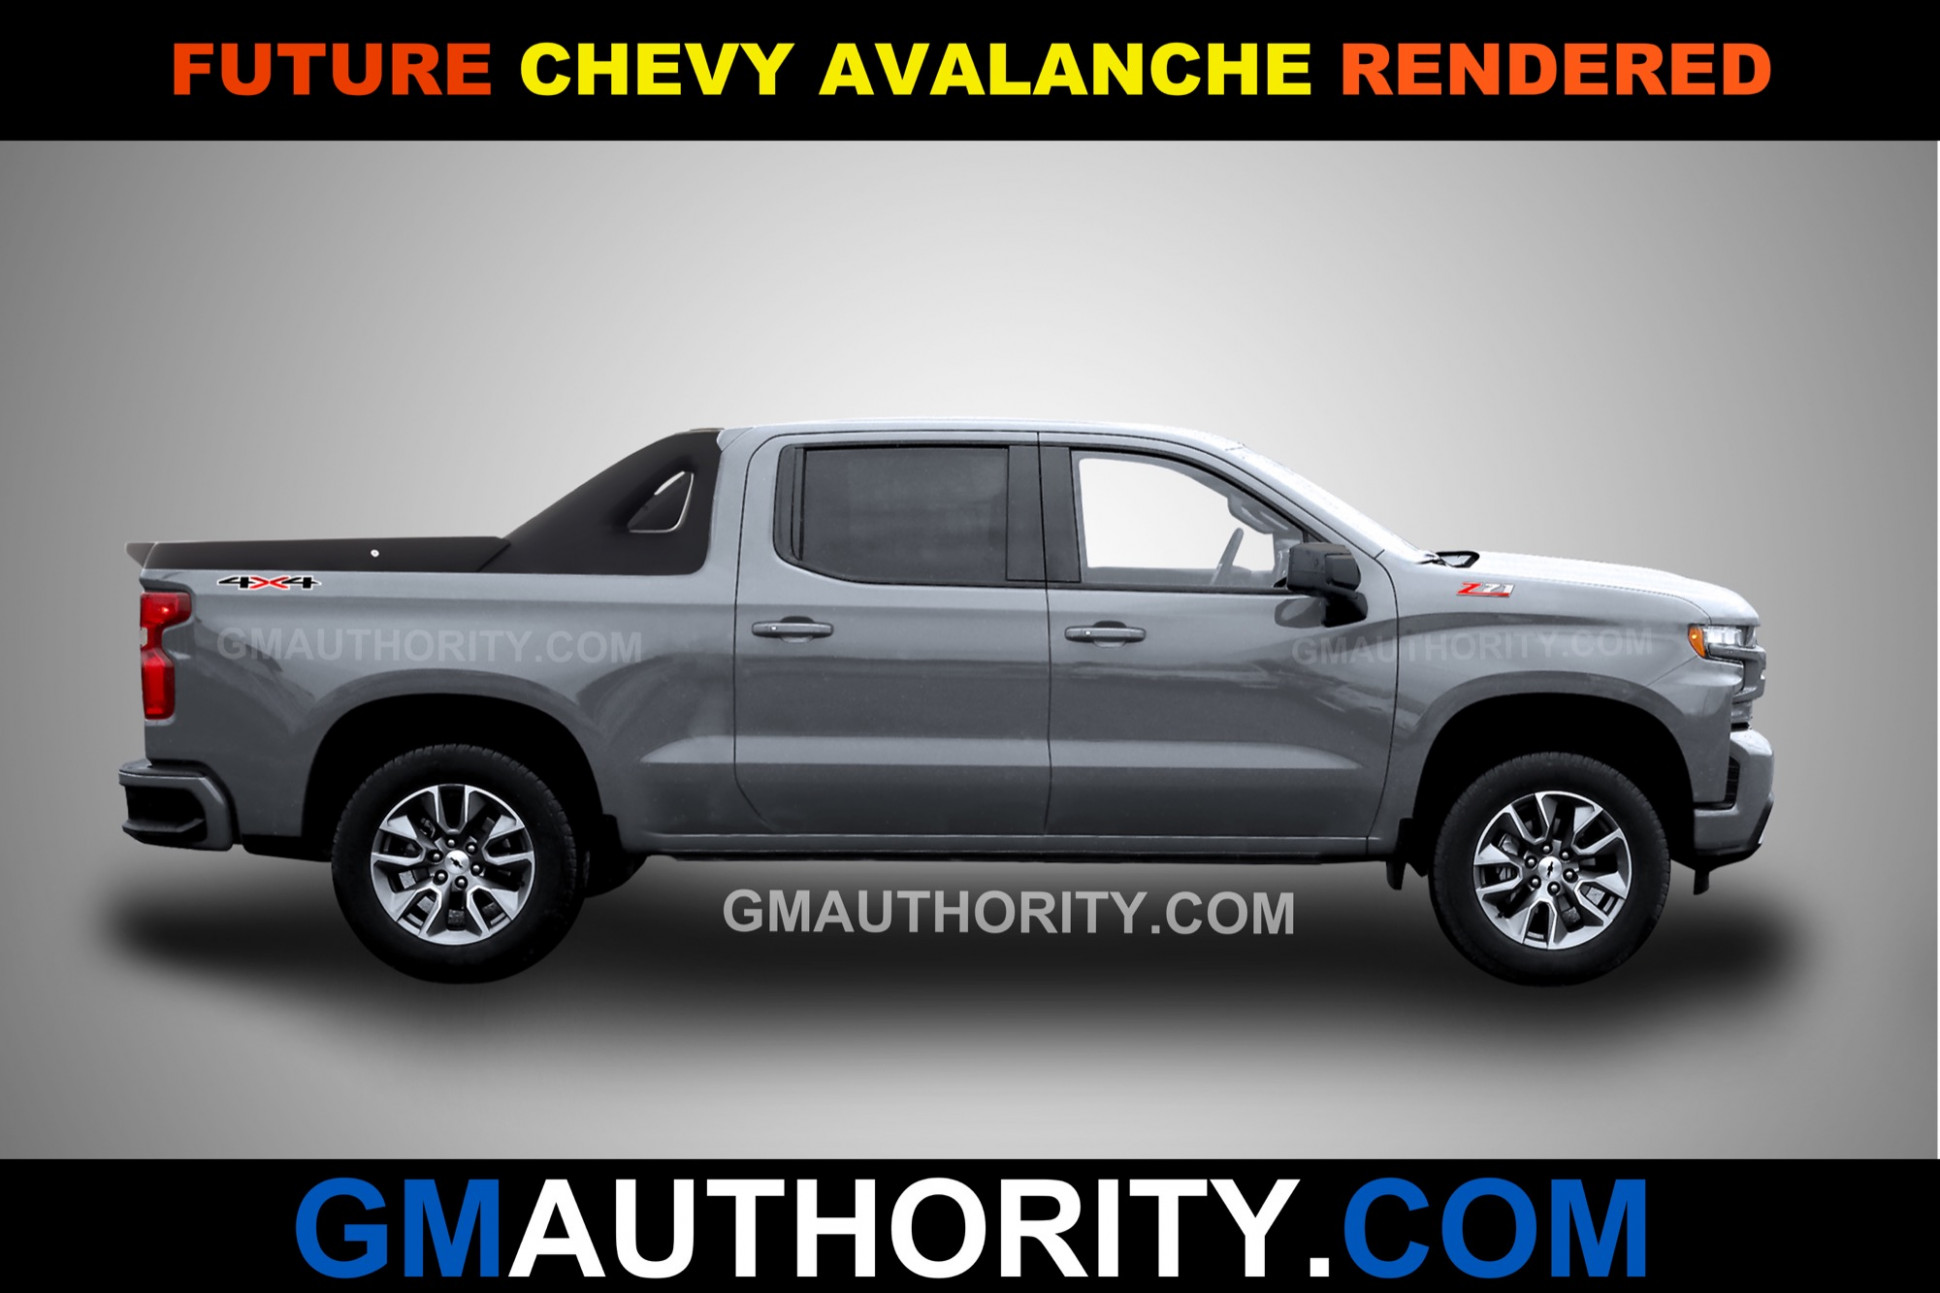 New Concept 2022 Chevy Avalanche